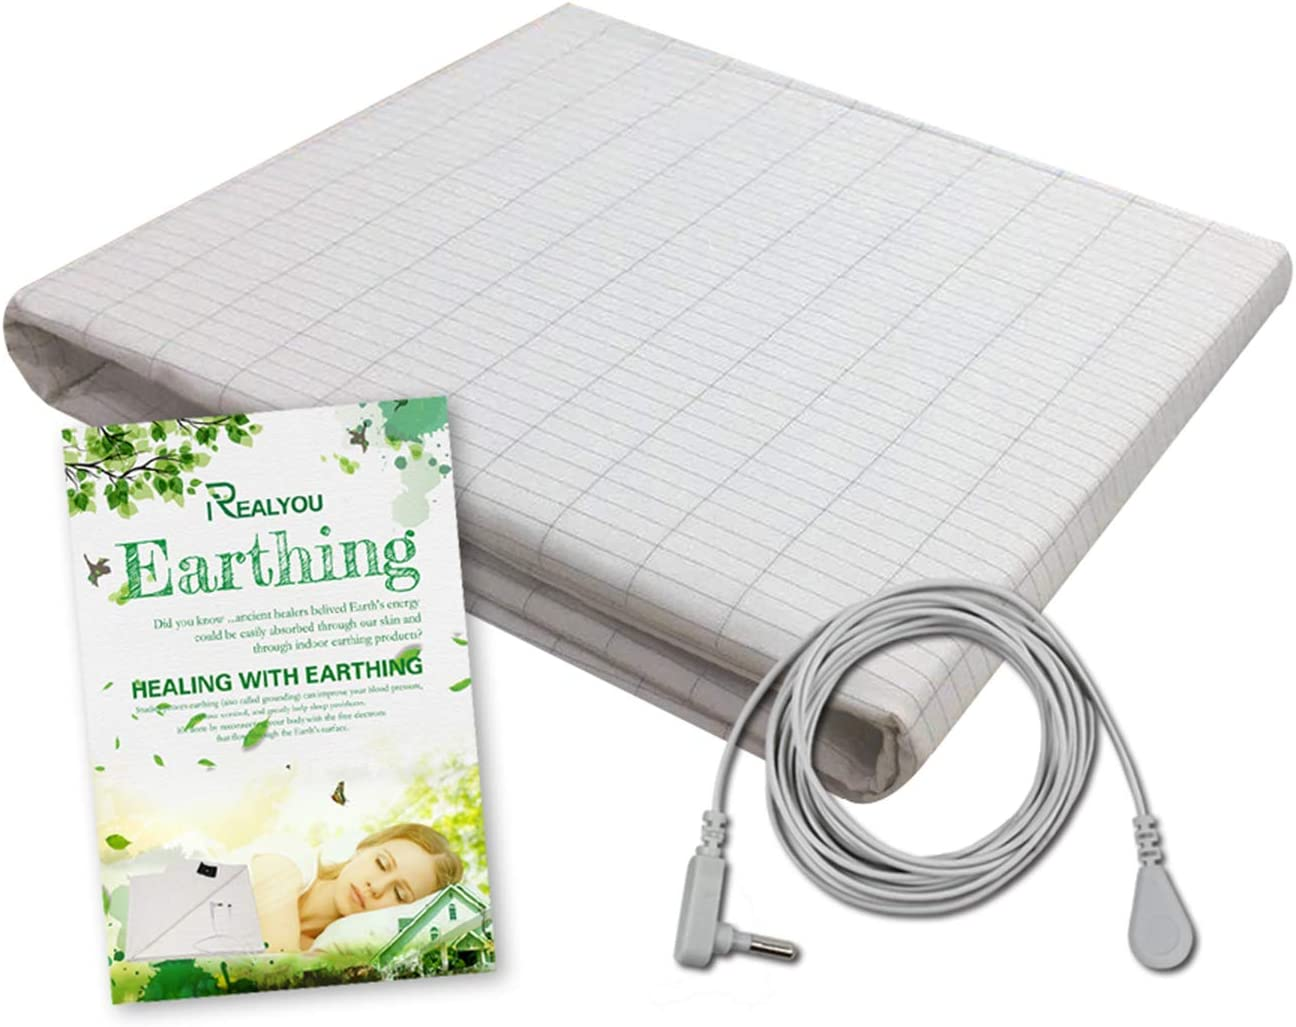 Earthing Half Sheet, Earthing Grounding Sheet for EMF protection, Improve Your Sleep, Less Pain and Inflammation/Healthy Conductive Silver Fiber Mat (Sheet 25x52 inch)